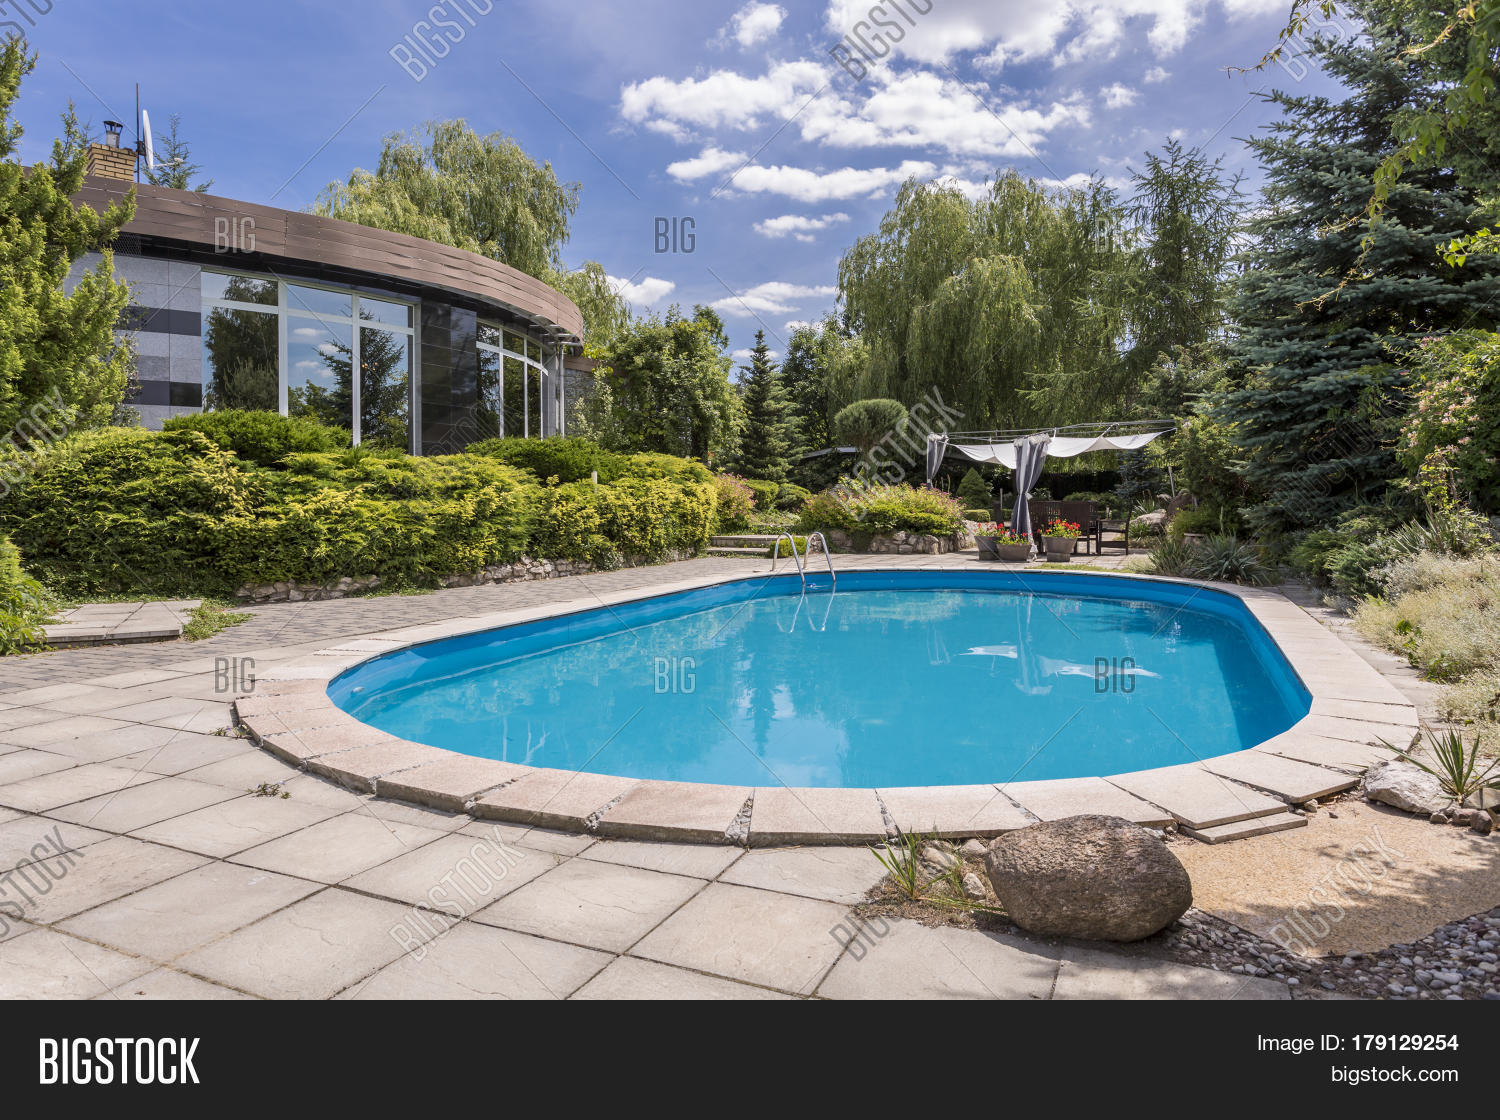 Oval swimming pool big garden image photo bigstock for Big swimming pools for gardens